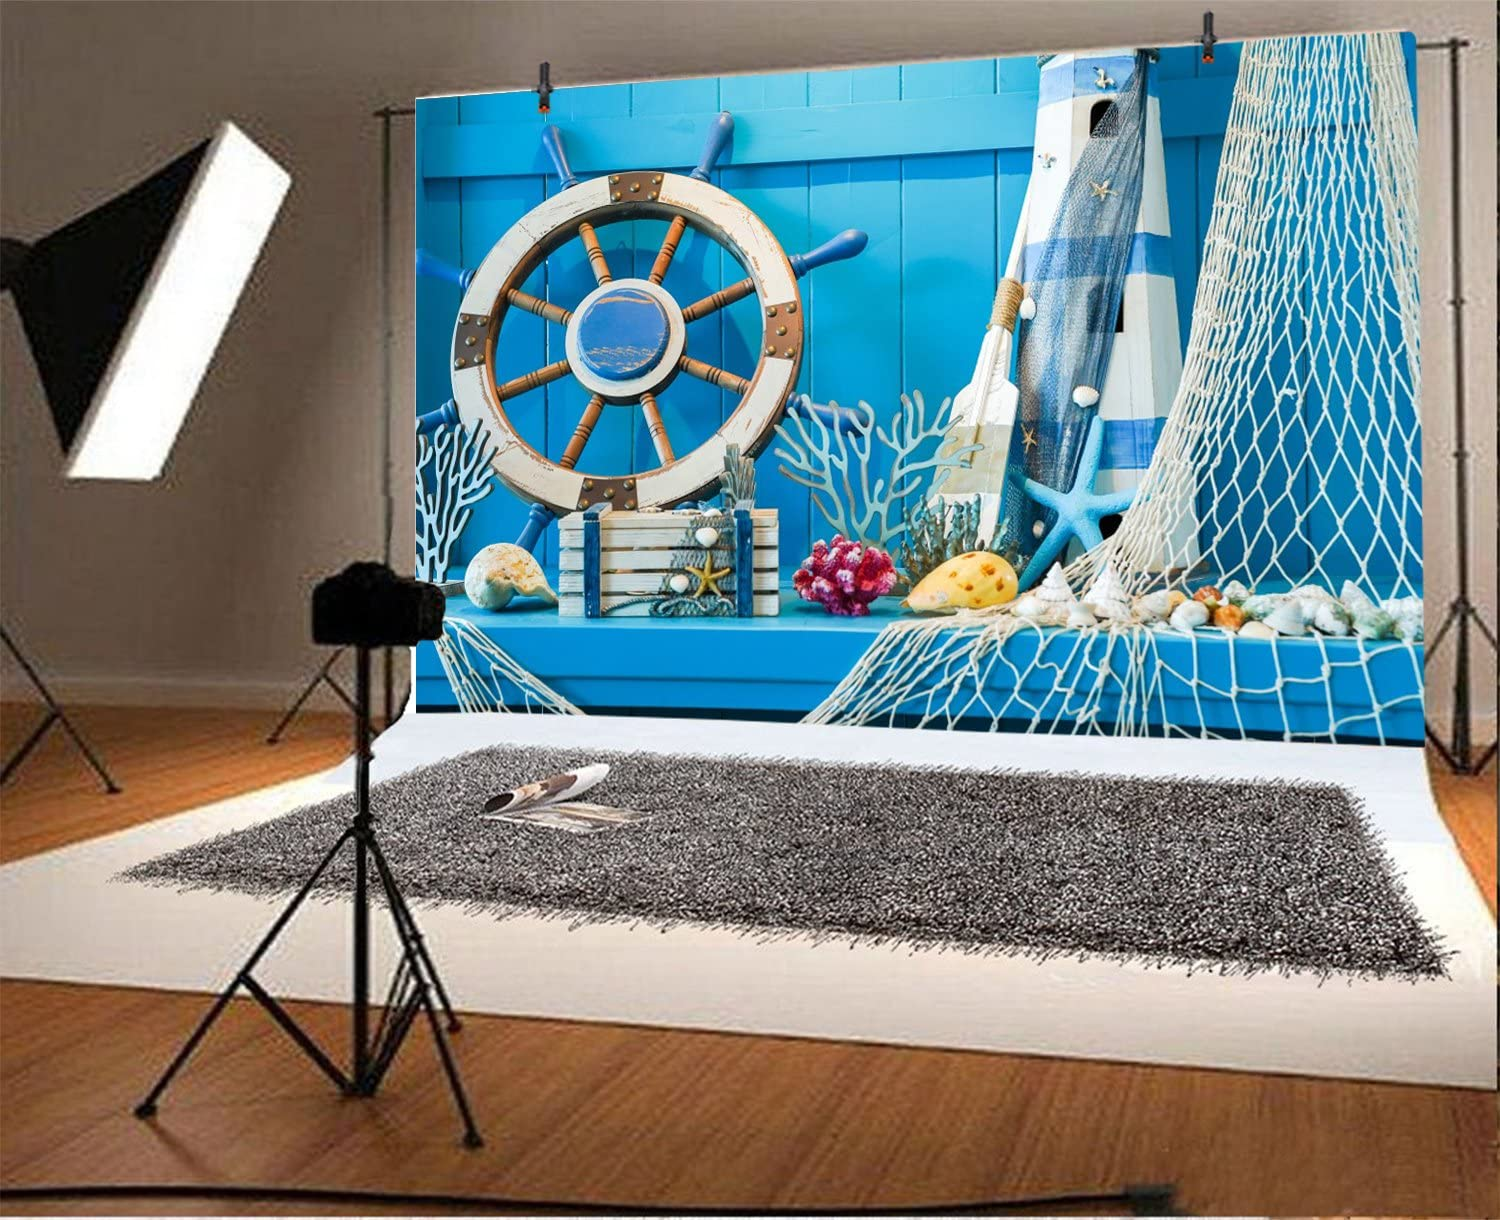 LFEEY 7x5ft Blue Wooden Wall Nautical Birthday Backdrop Seashells Sailing Ship Wheel Helm Fishing Net Starfish Summer Party Photography Background for Events Videos YouTube Photo Studio Props